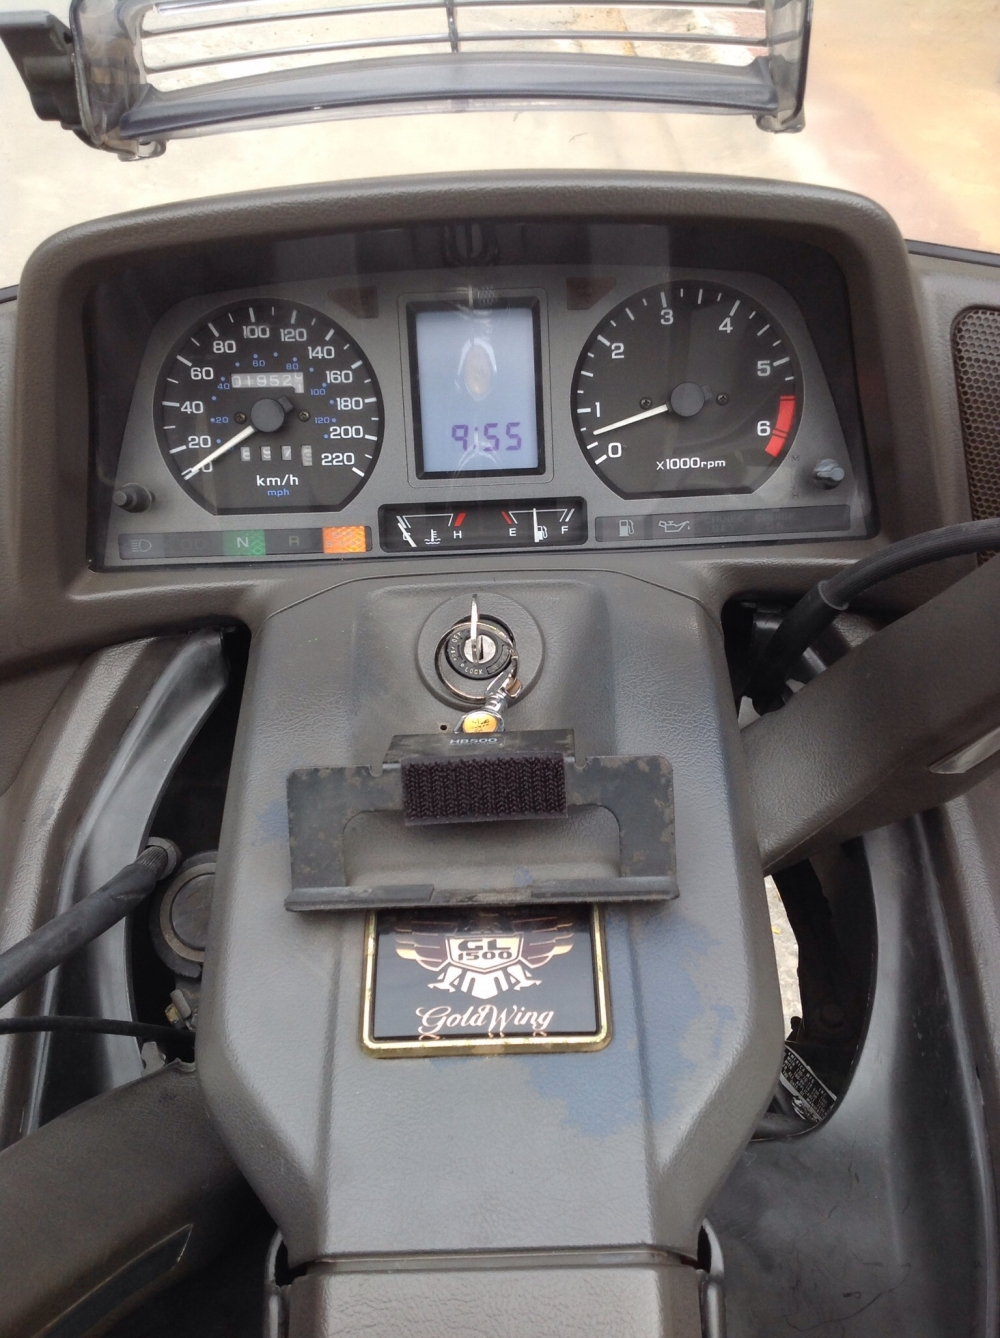 Ban honda goldwing gia tot - 7